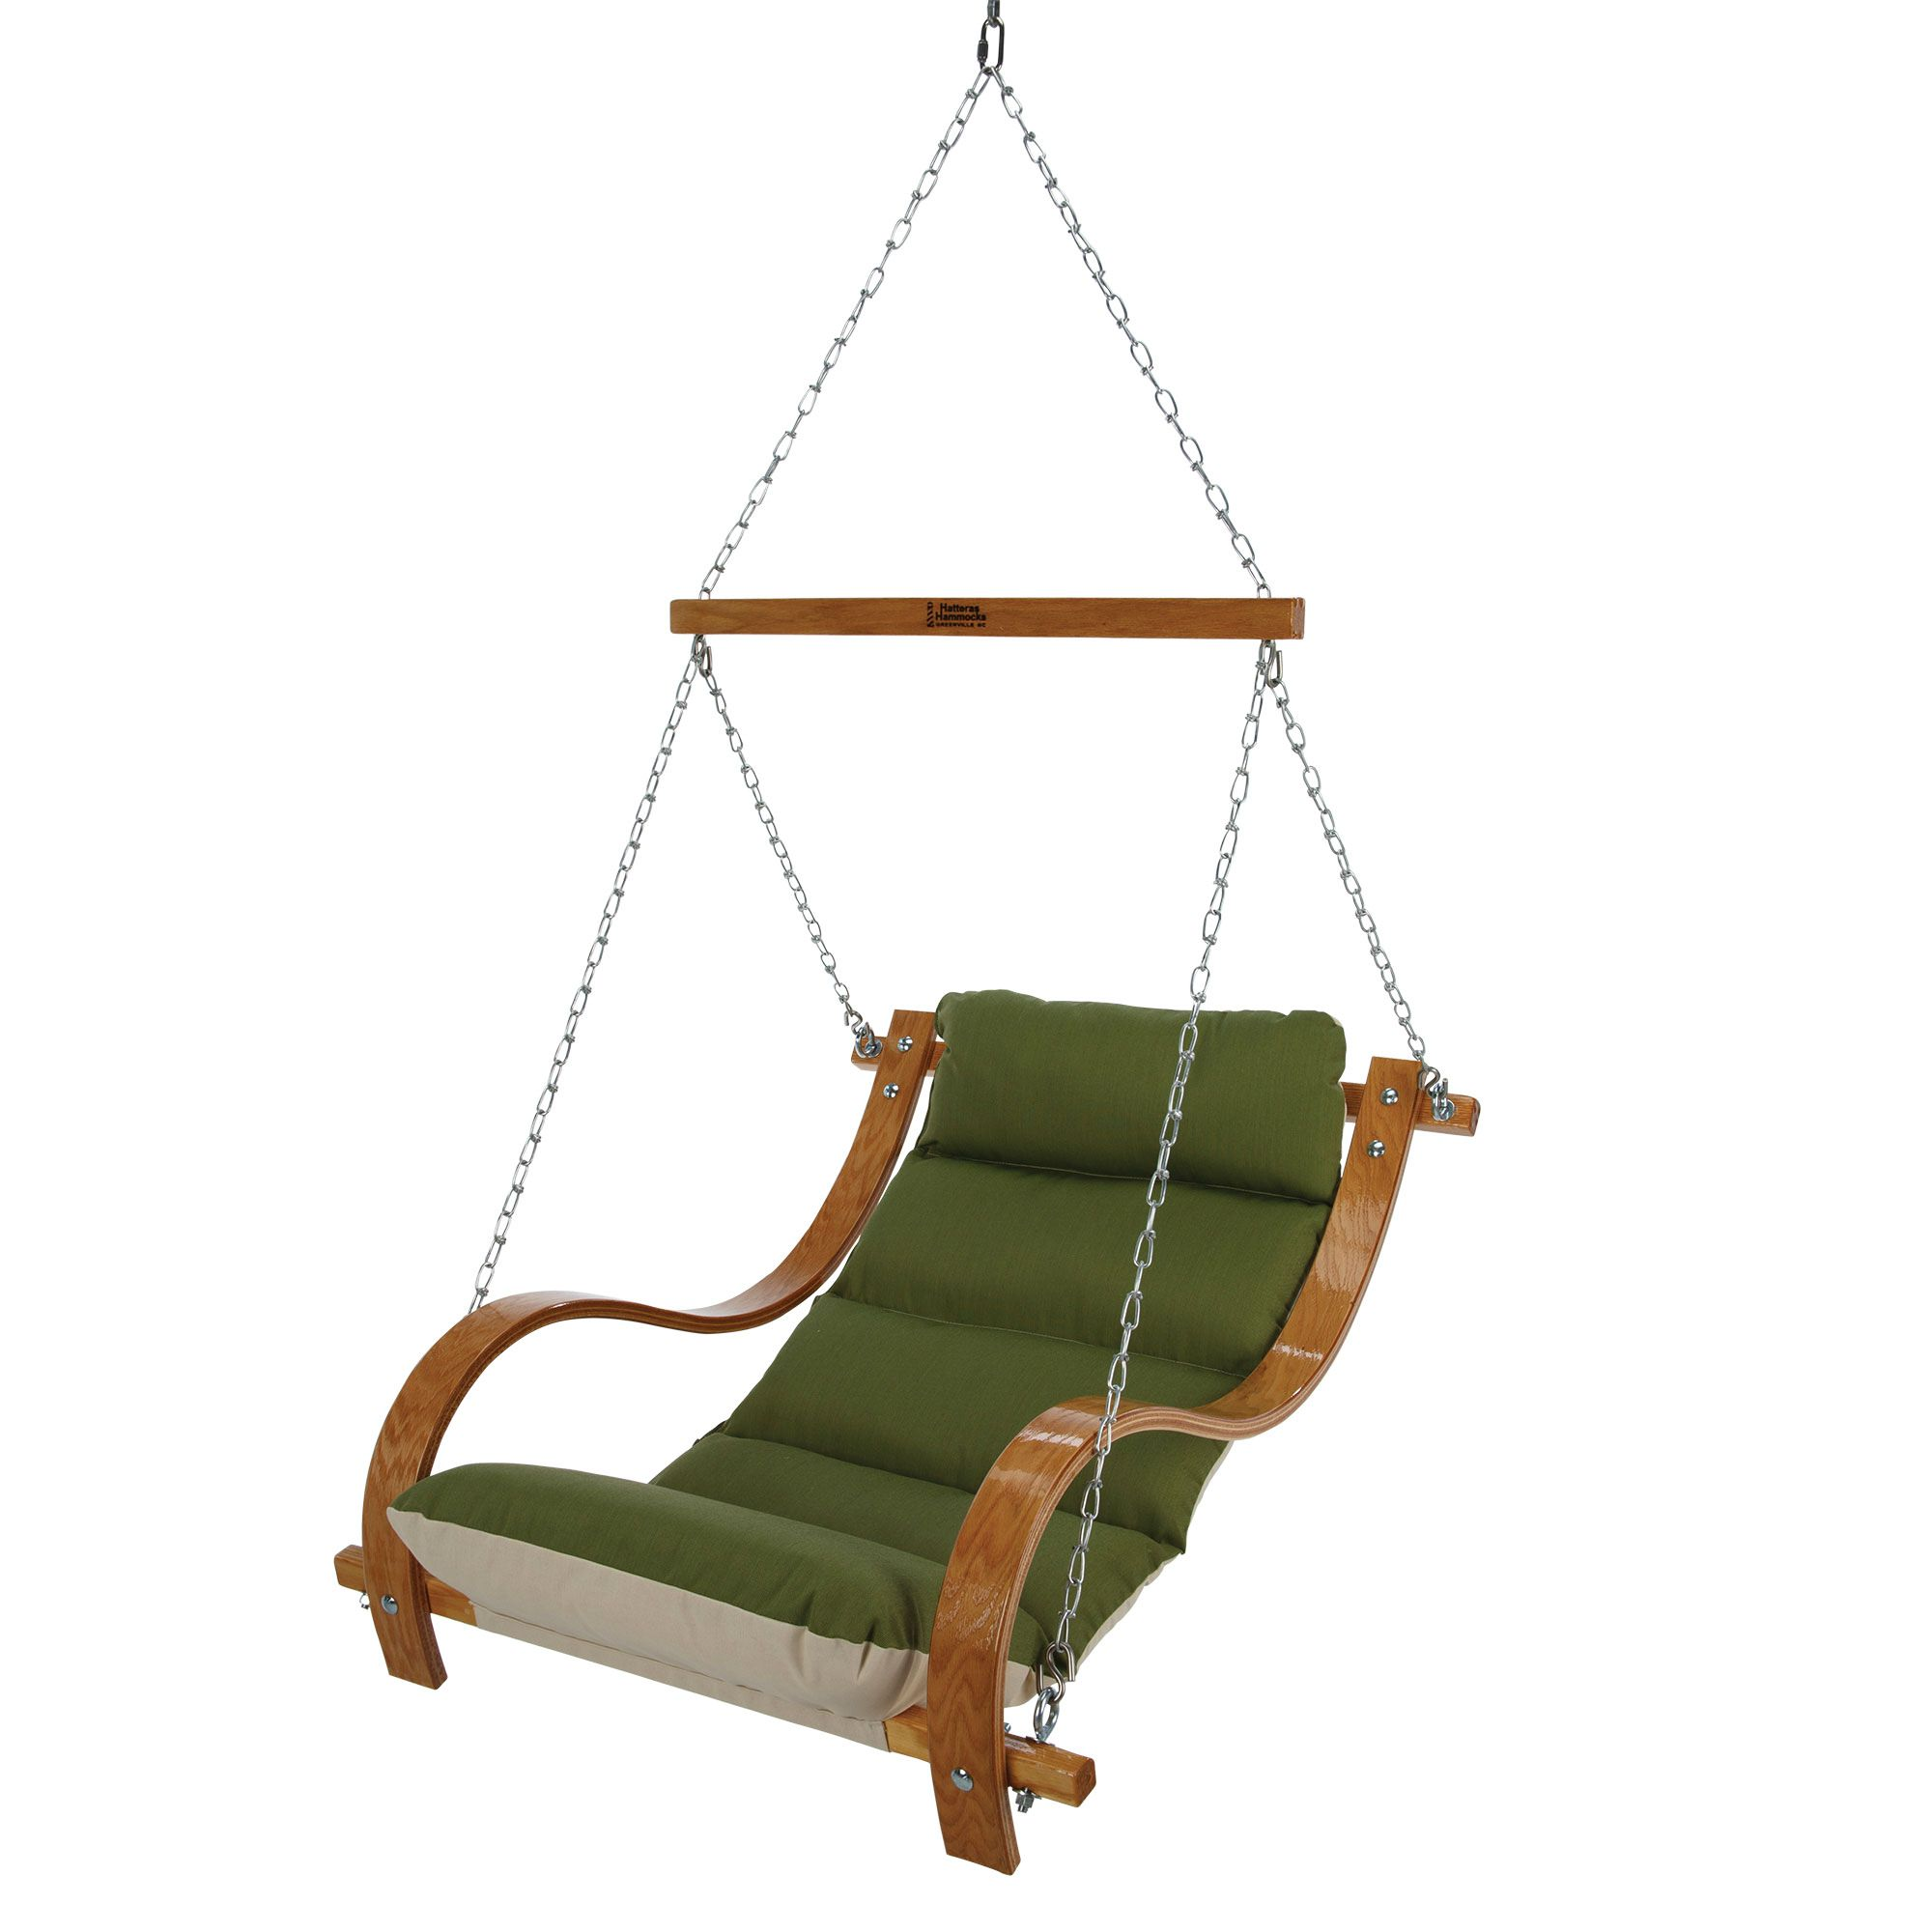 Hatteras hammocks single swing stand